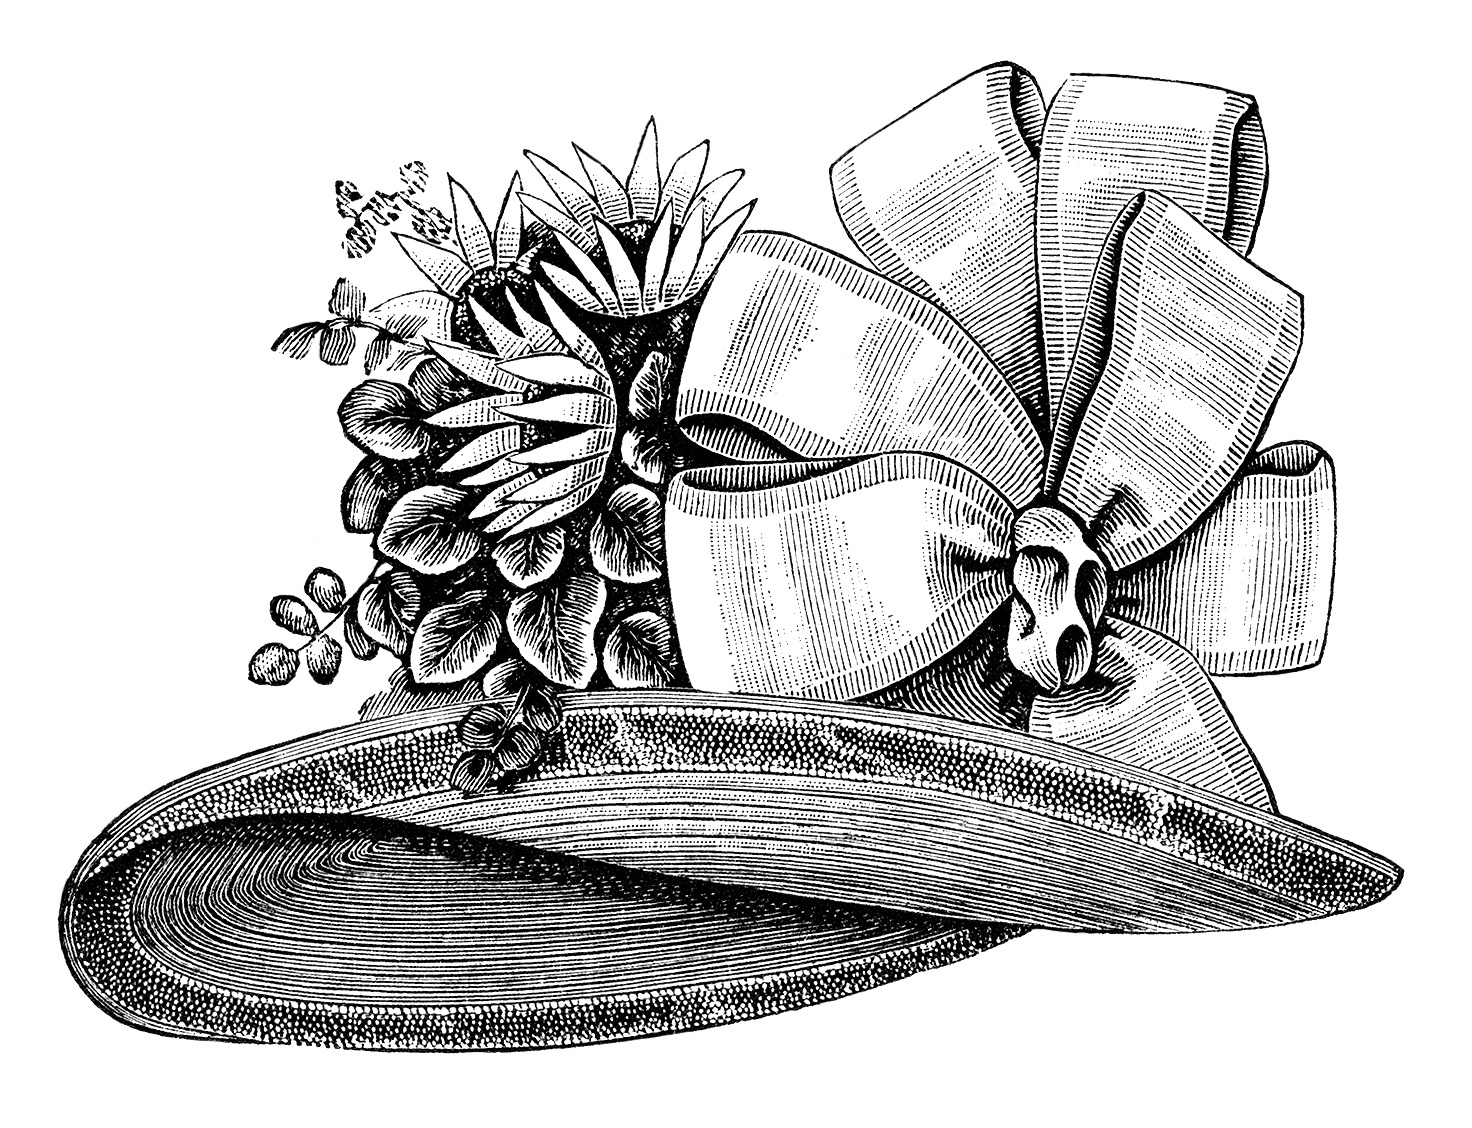 Ladies' Victorian Hat ~ Free Vintage Clip Art | Old Design Shop Blog